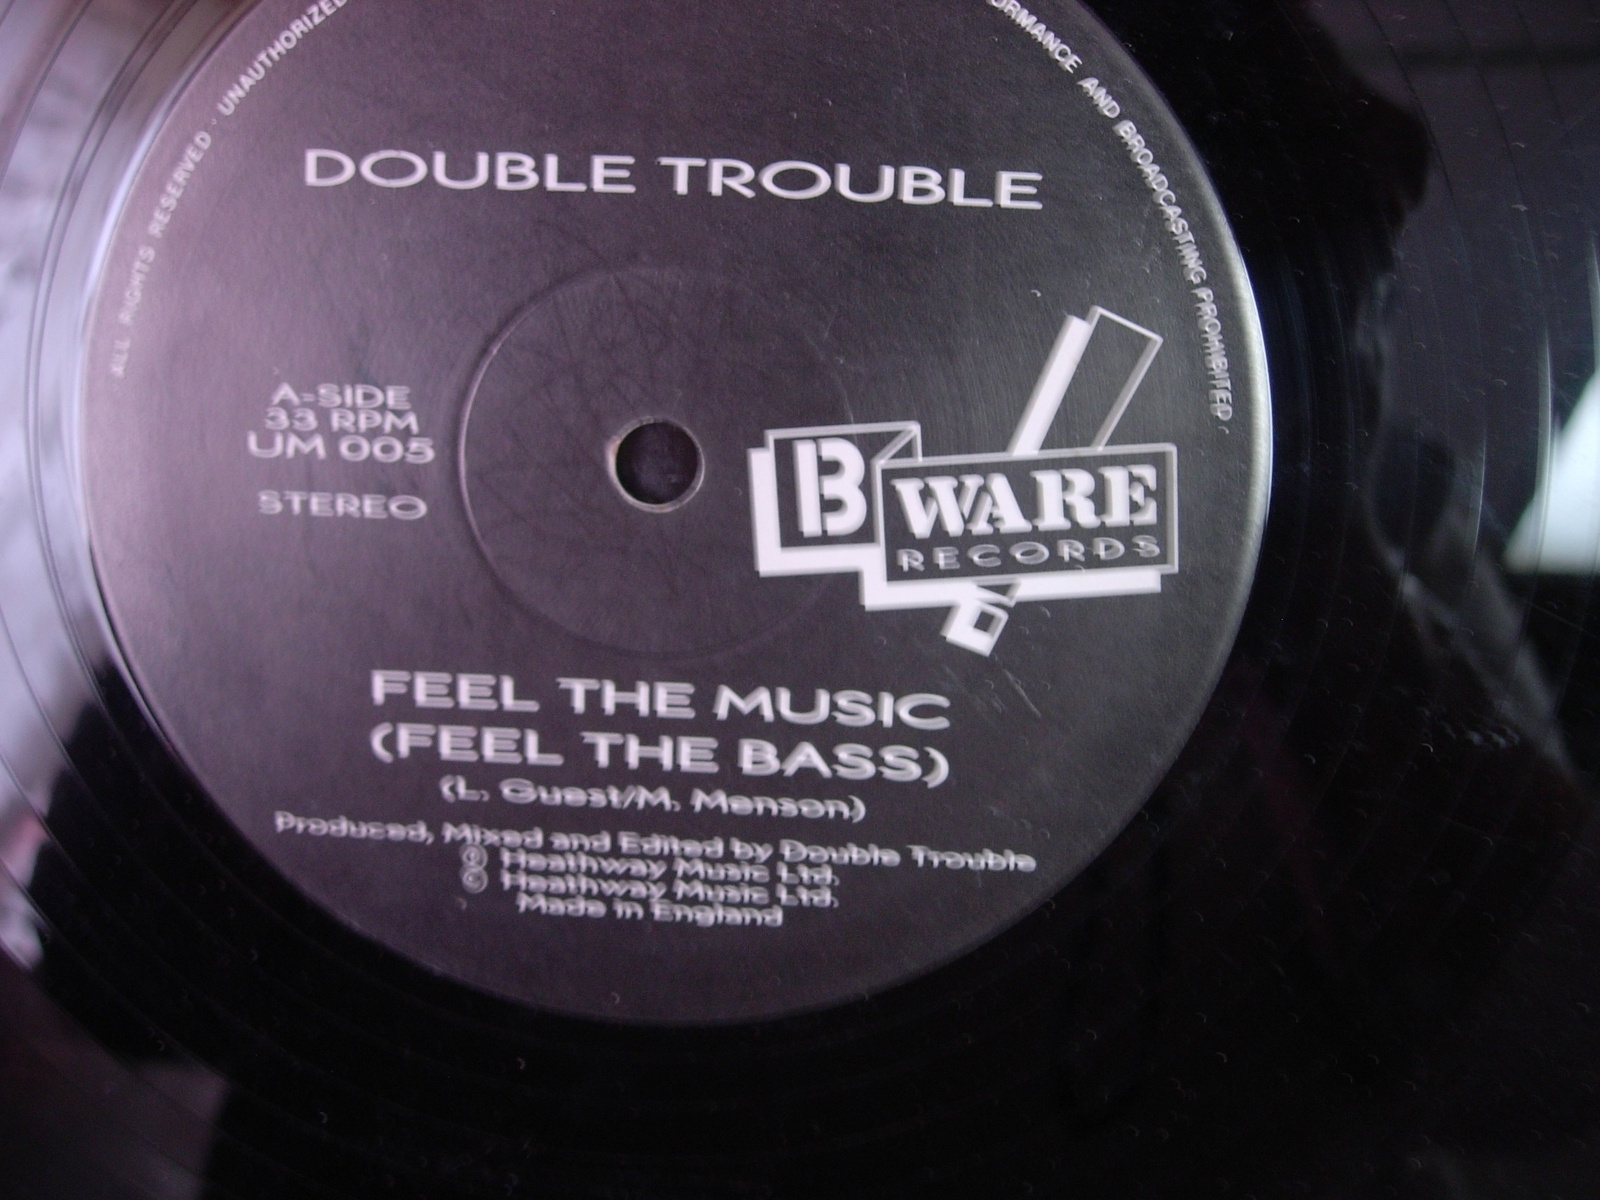 Double Trouble - Feed the Music - B Ware Records UM-005